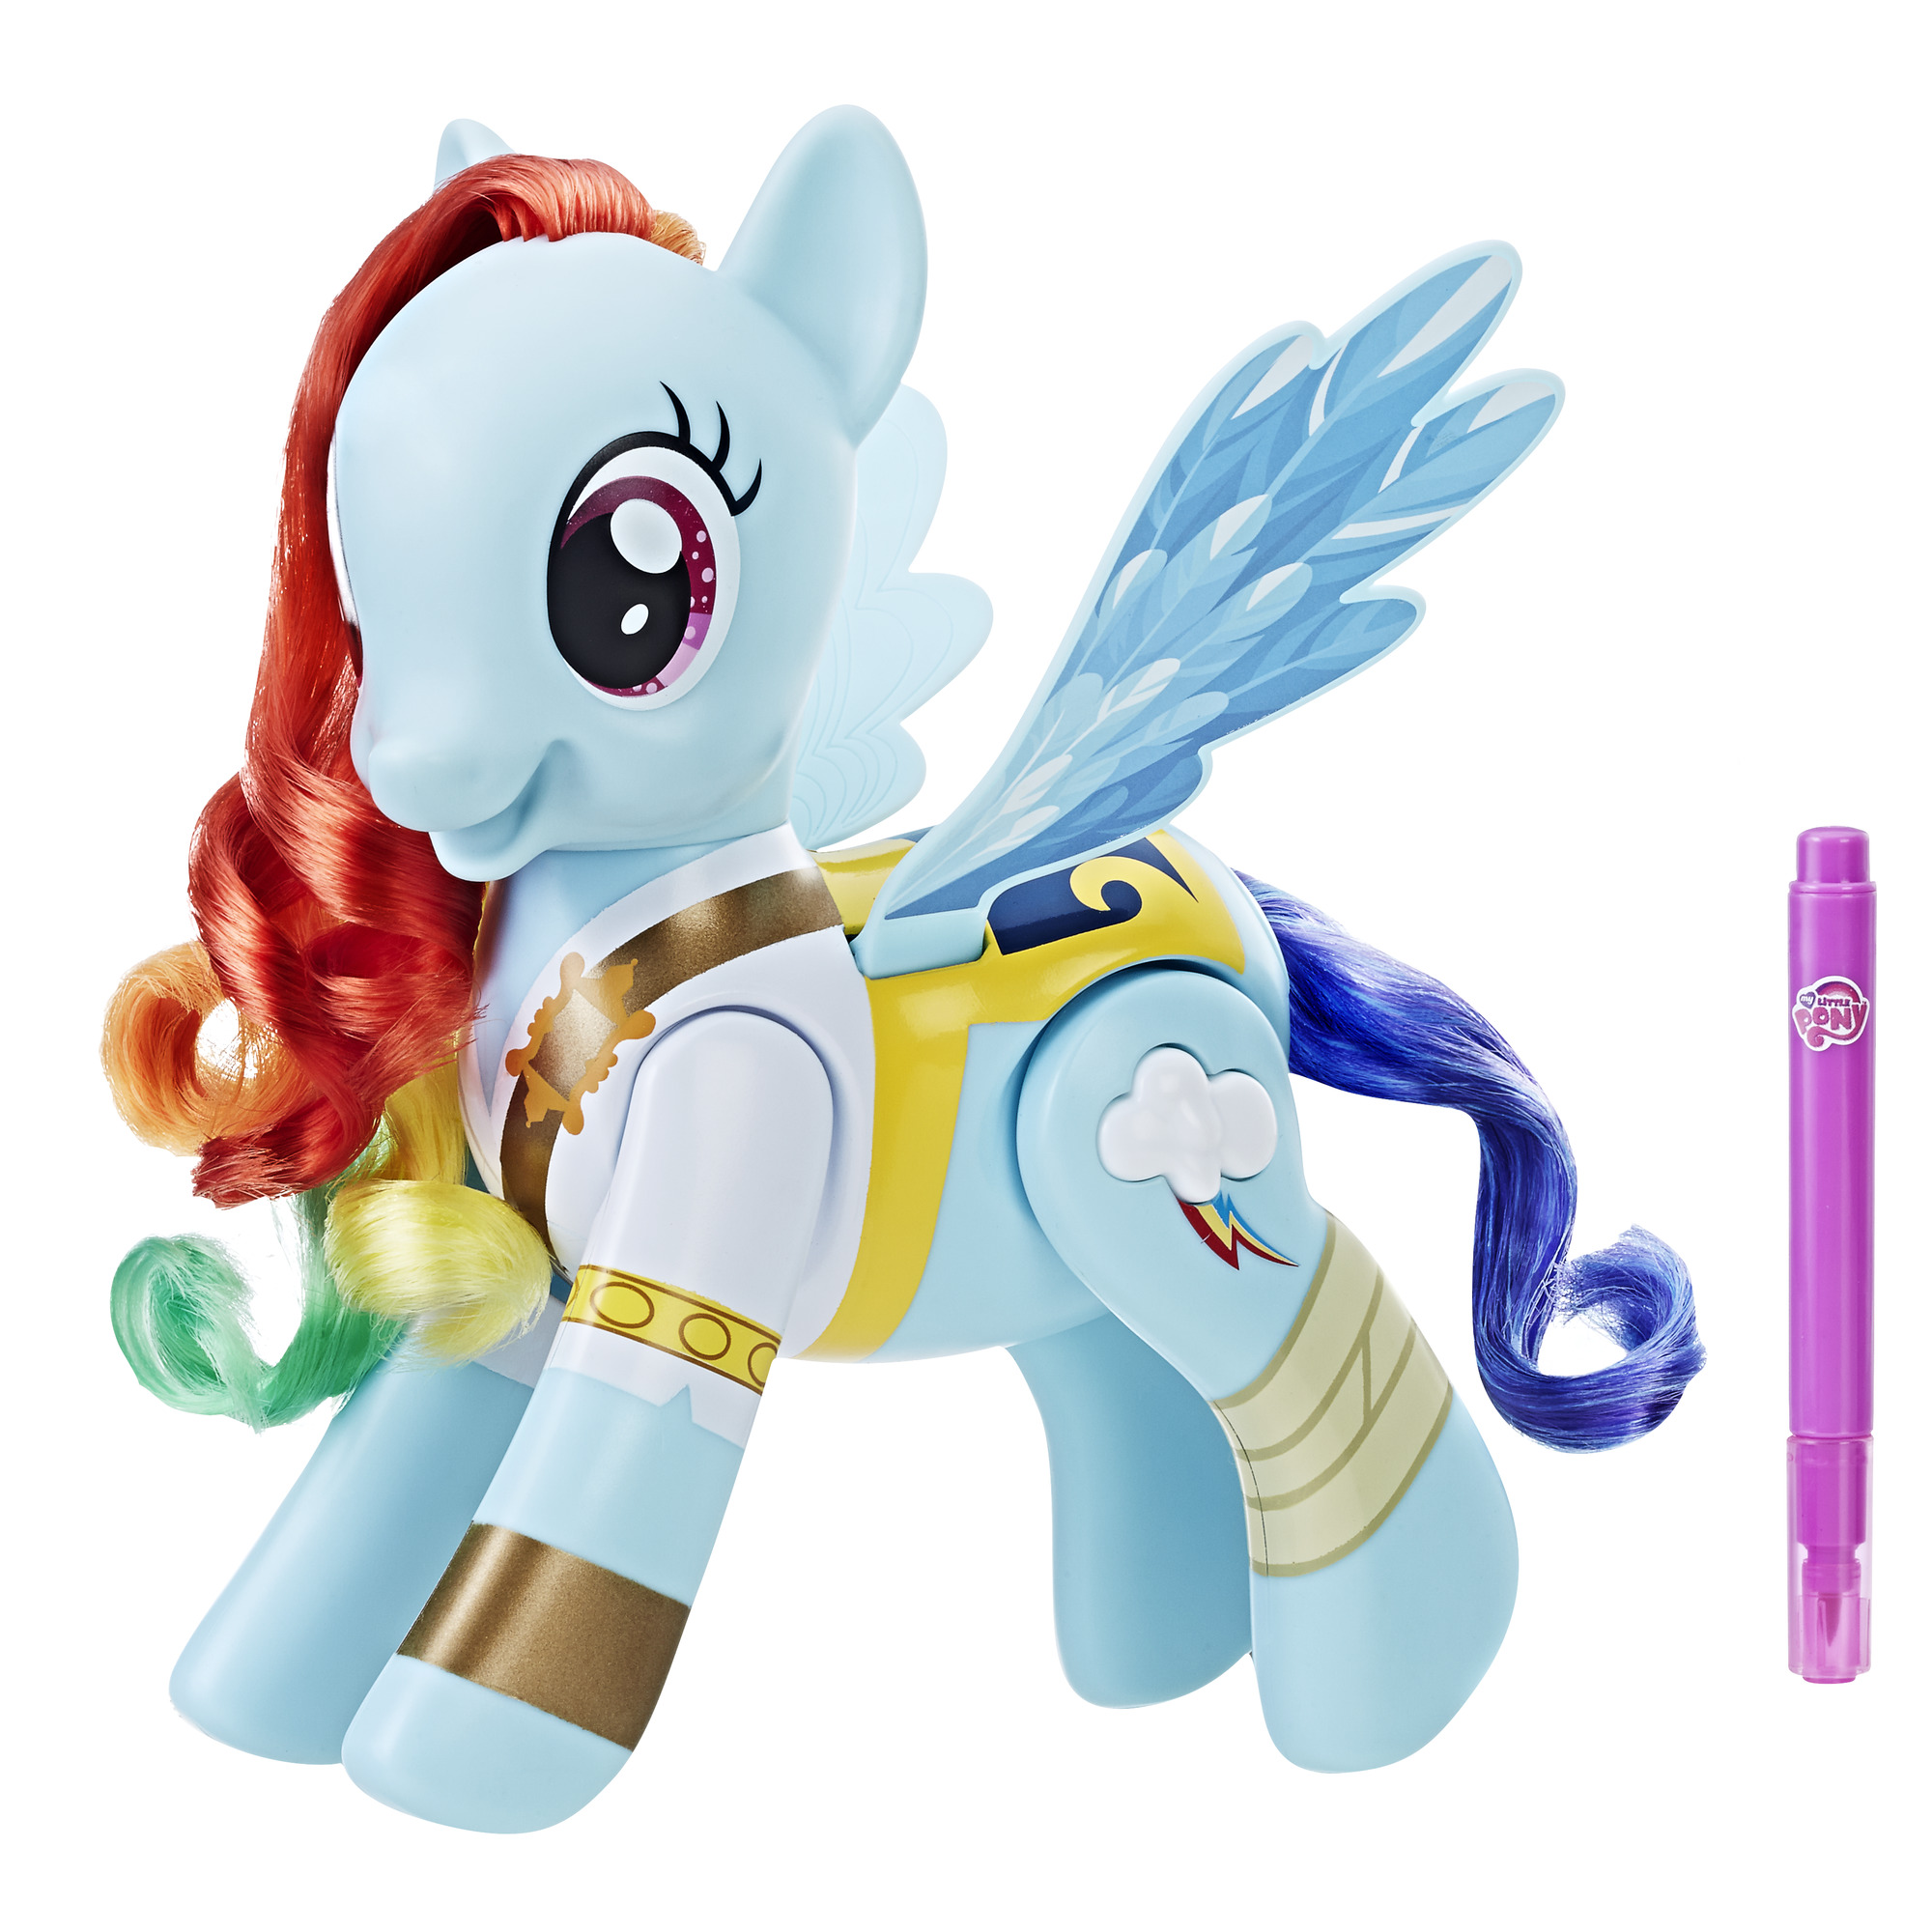 My Little Pony the Movie Flip & Whirl Pirate Rainbow Dash